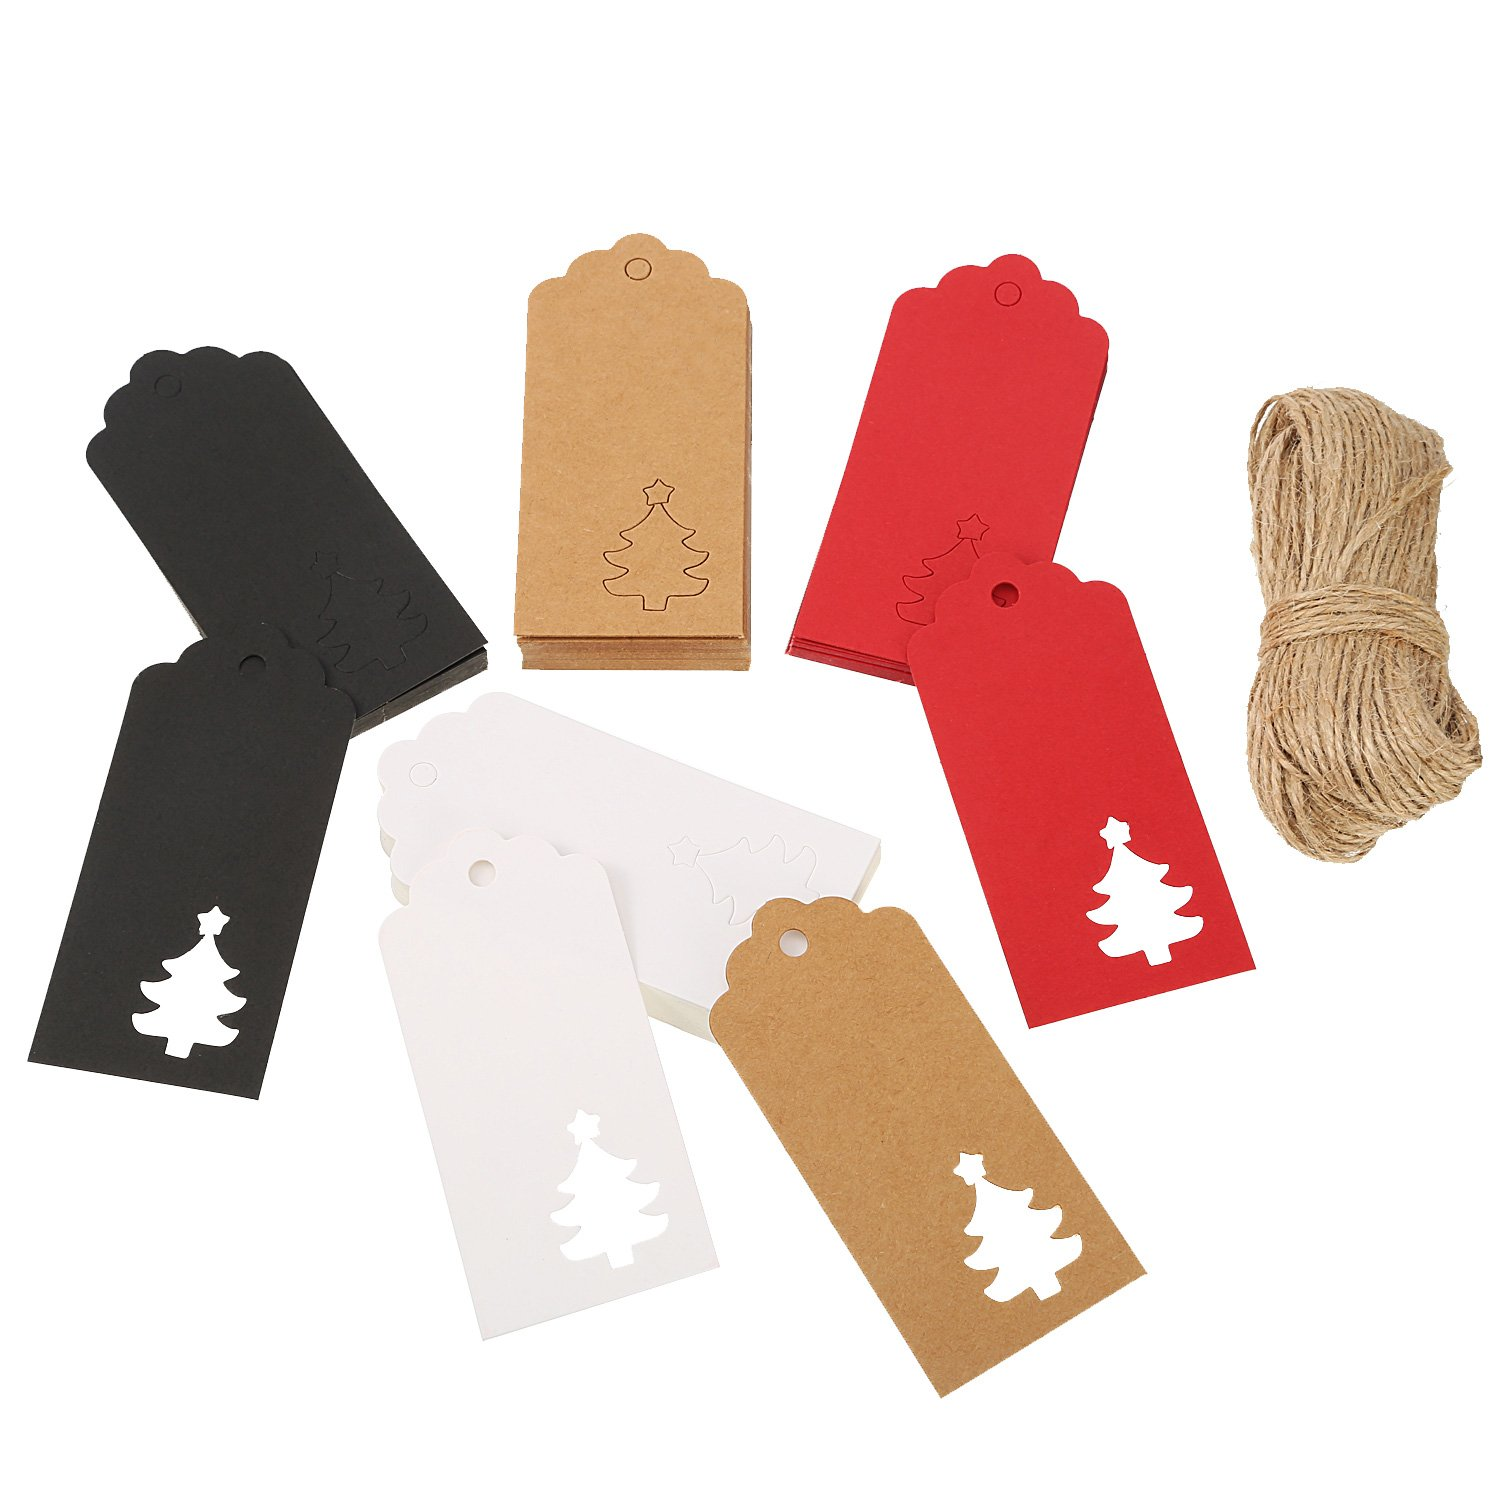 100 Pack Christmas Paper Gift Tags Crafts Tags Hollow Christmas Tree Hang Labels Wedding Party Favor Tags with 30 Meters Twine (Black) Sumind 4336879916